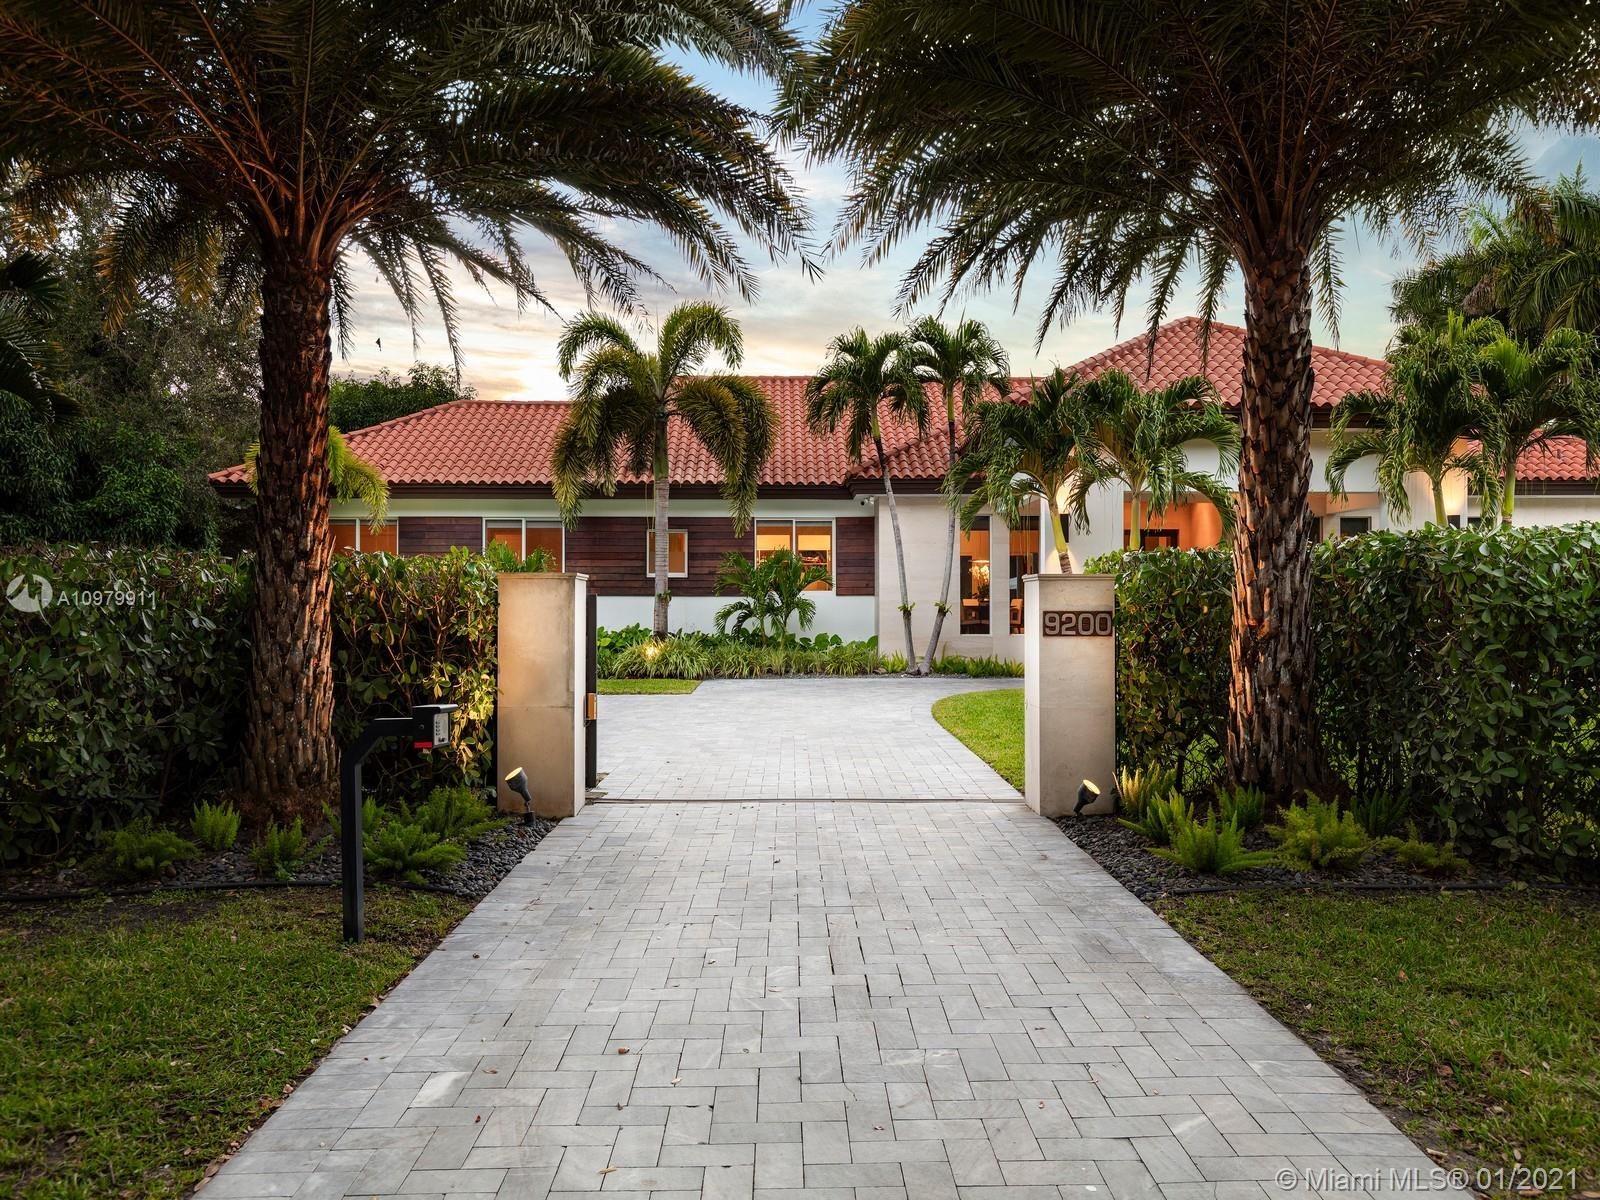 Impeccably pristine estate located in N Pinecrest, nestled on a 33,976 sf gated lot, surrounded by manicured landscaping. This estate has been completely renovated w/ fine finishes & high ceilings throughout. Welcomed by a spacious open floor plan w/ an elegant living rm, dining, breakfast area & numerous imp windows & doors providing fascinating views. This 6-bedrm, 5-bathrm residence boasts expansive living areas incl two family rms, media rm, & open concept kitchen w/ top-of-the-line appl, wet bar & wine gallery. Master suite offers a spacious setting w/ spa bath, walk-in closet & access to patio area. Discover an outdr oasis w/ covered patio, lounging area, summer kit, & large swimming pool. Additional Features: 2 Car gar, service quarters, mango fruit trees. Pinecrest Elite Schools.